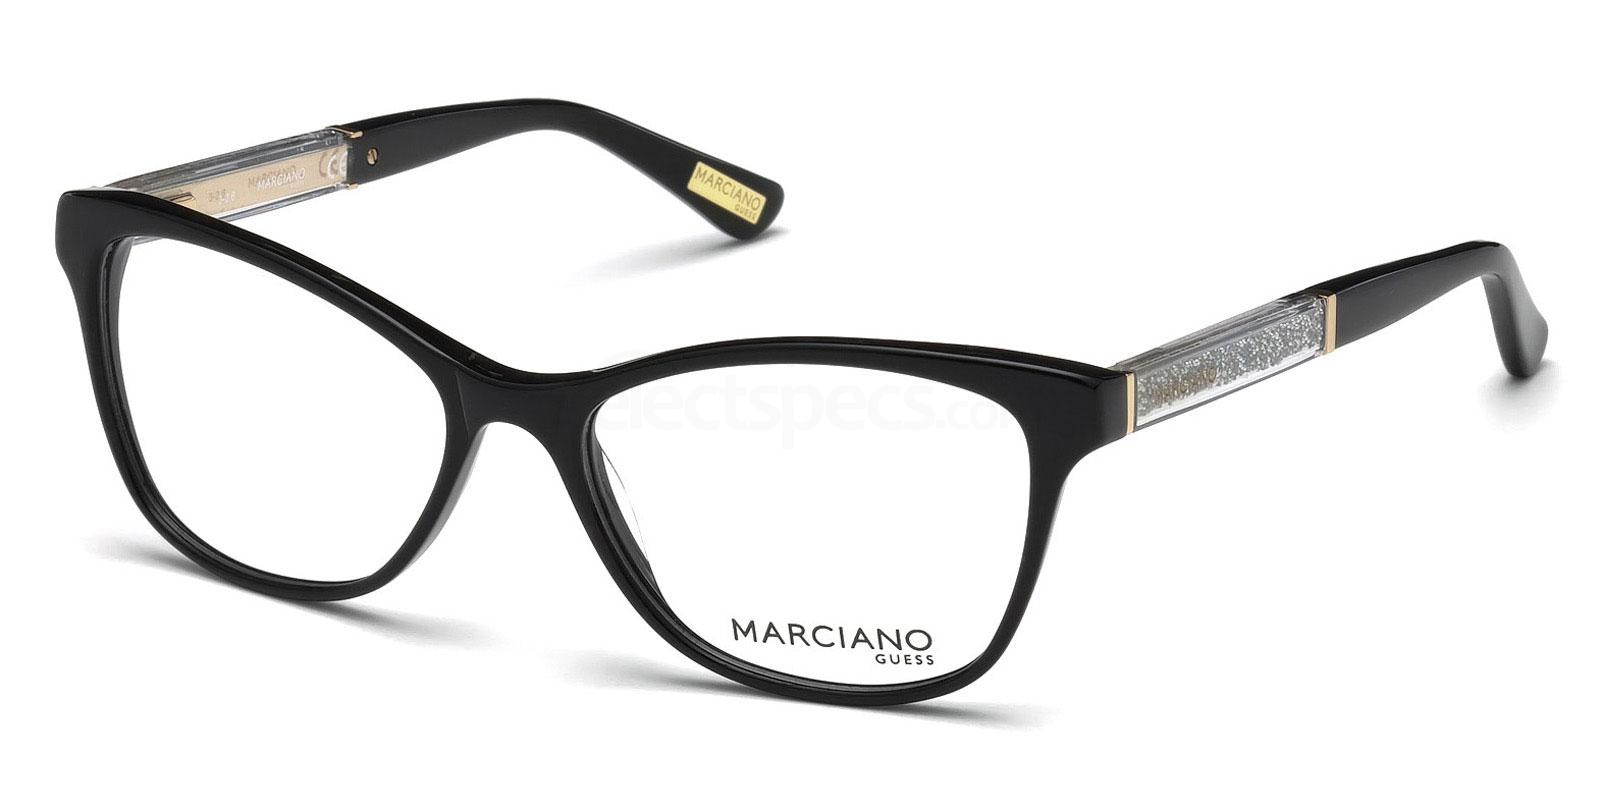 001 GM0313 Glasses, Guess by Marciano